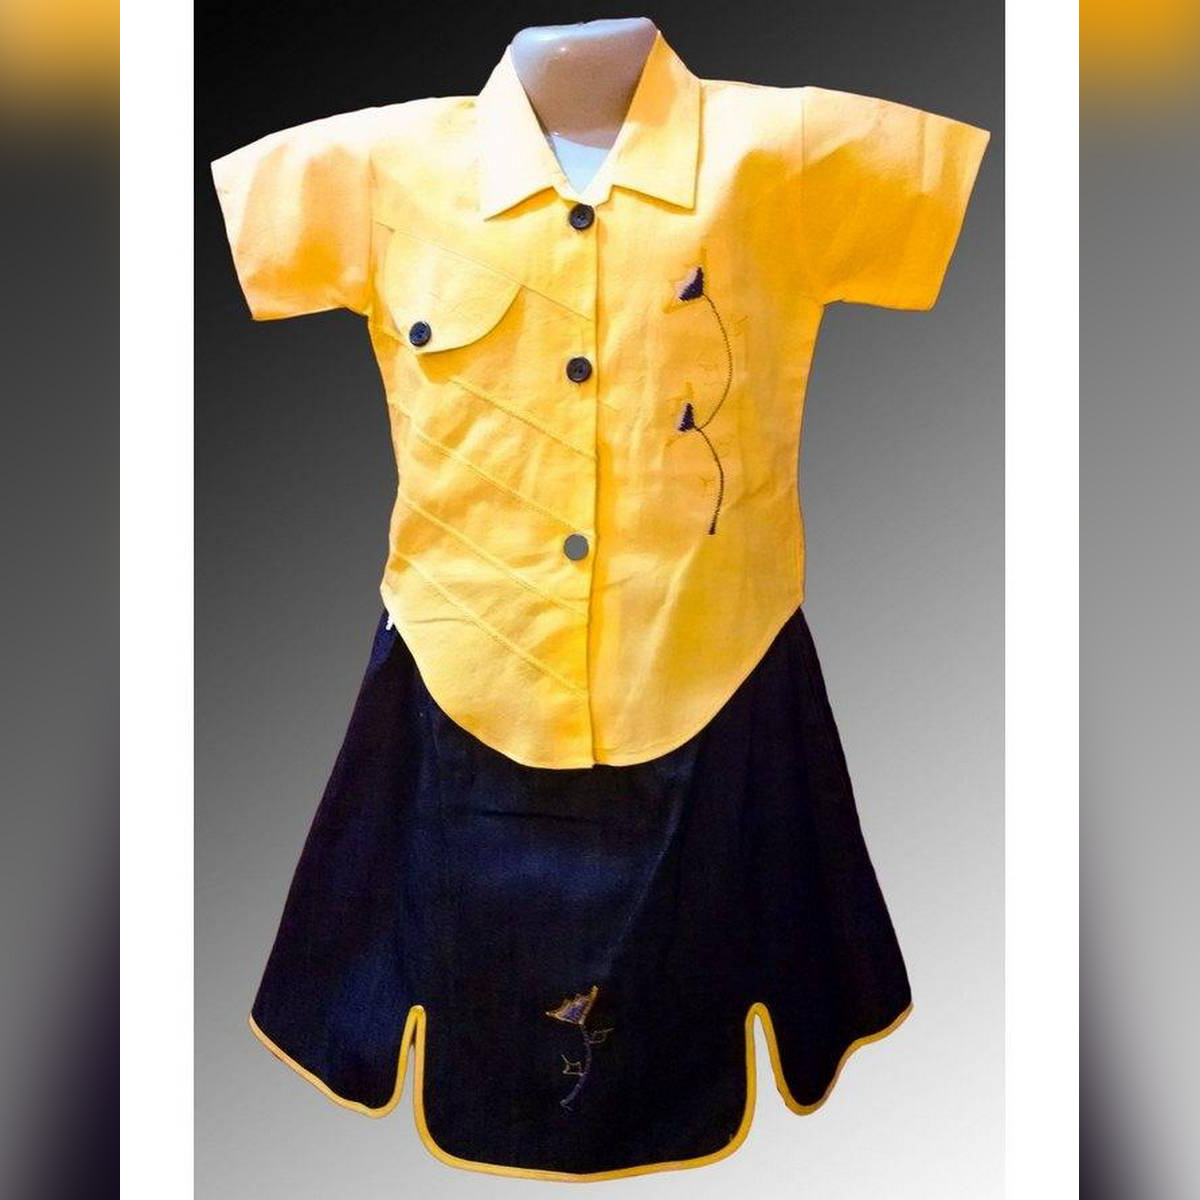 Wardrobe Desire Summer Collection Yellow Stone Washed Contrast Skirt Dress For Girls 4 to 8 Years